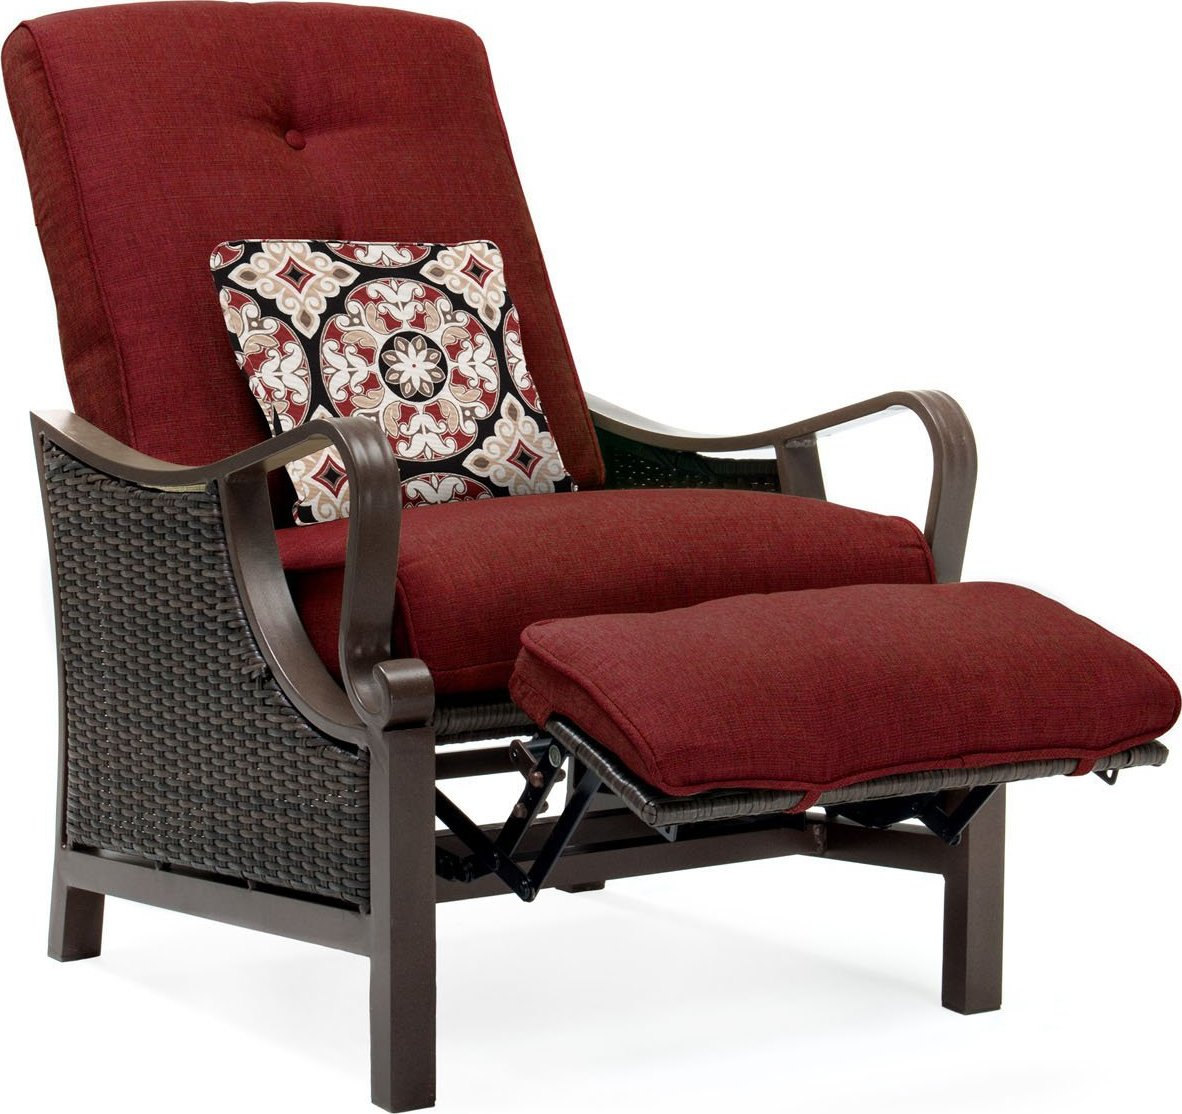 www recliner chairs office staples canada hanover ventura luxury resin wicker outdoor chair